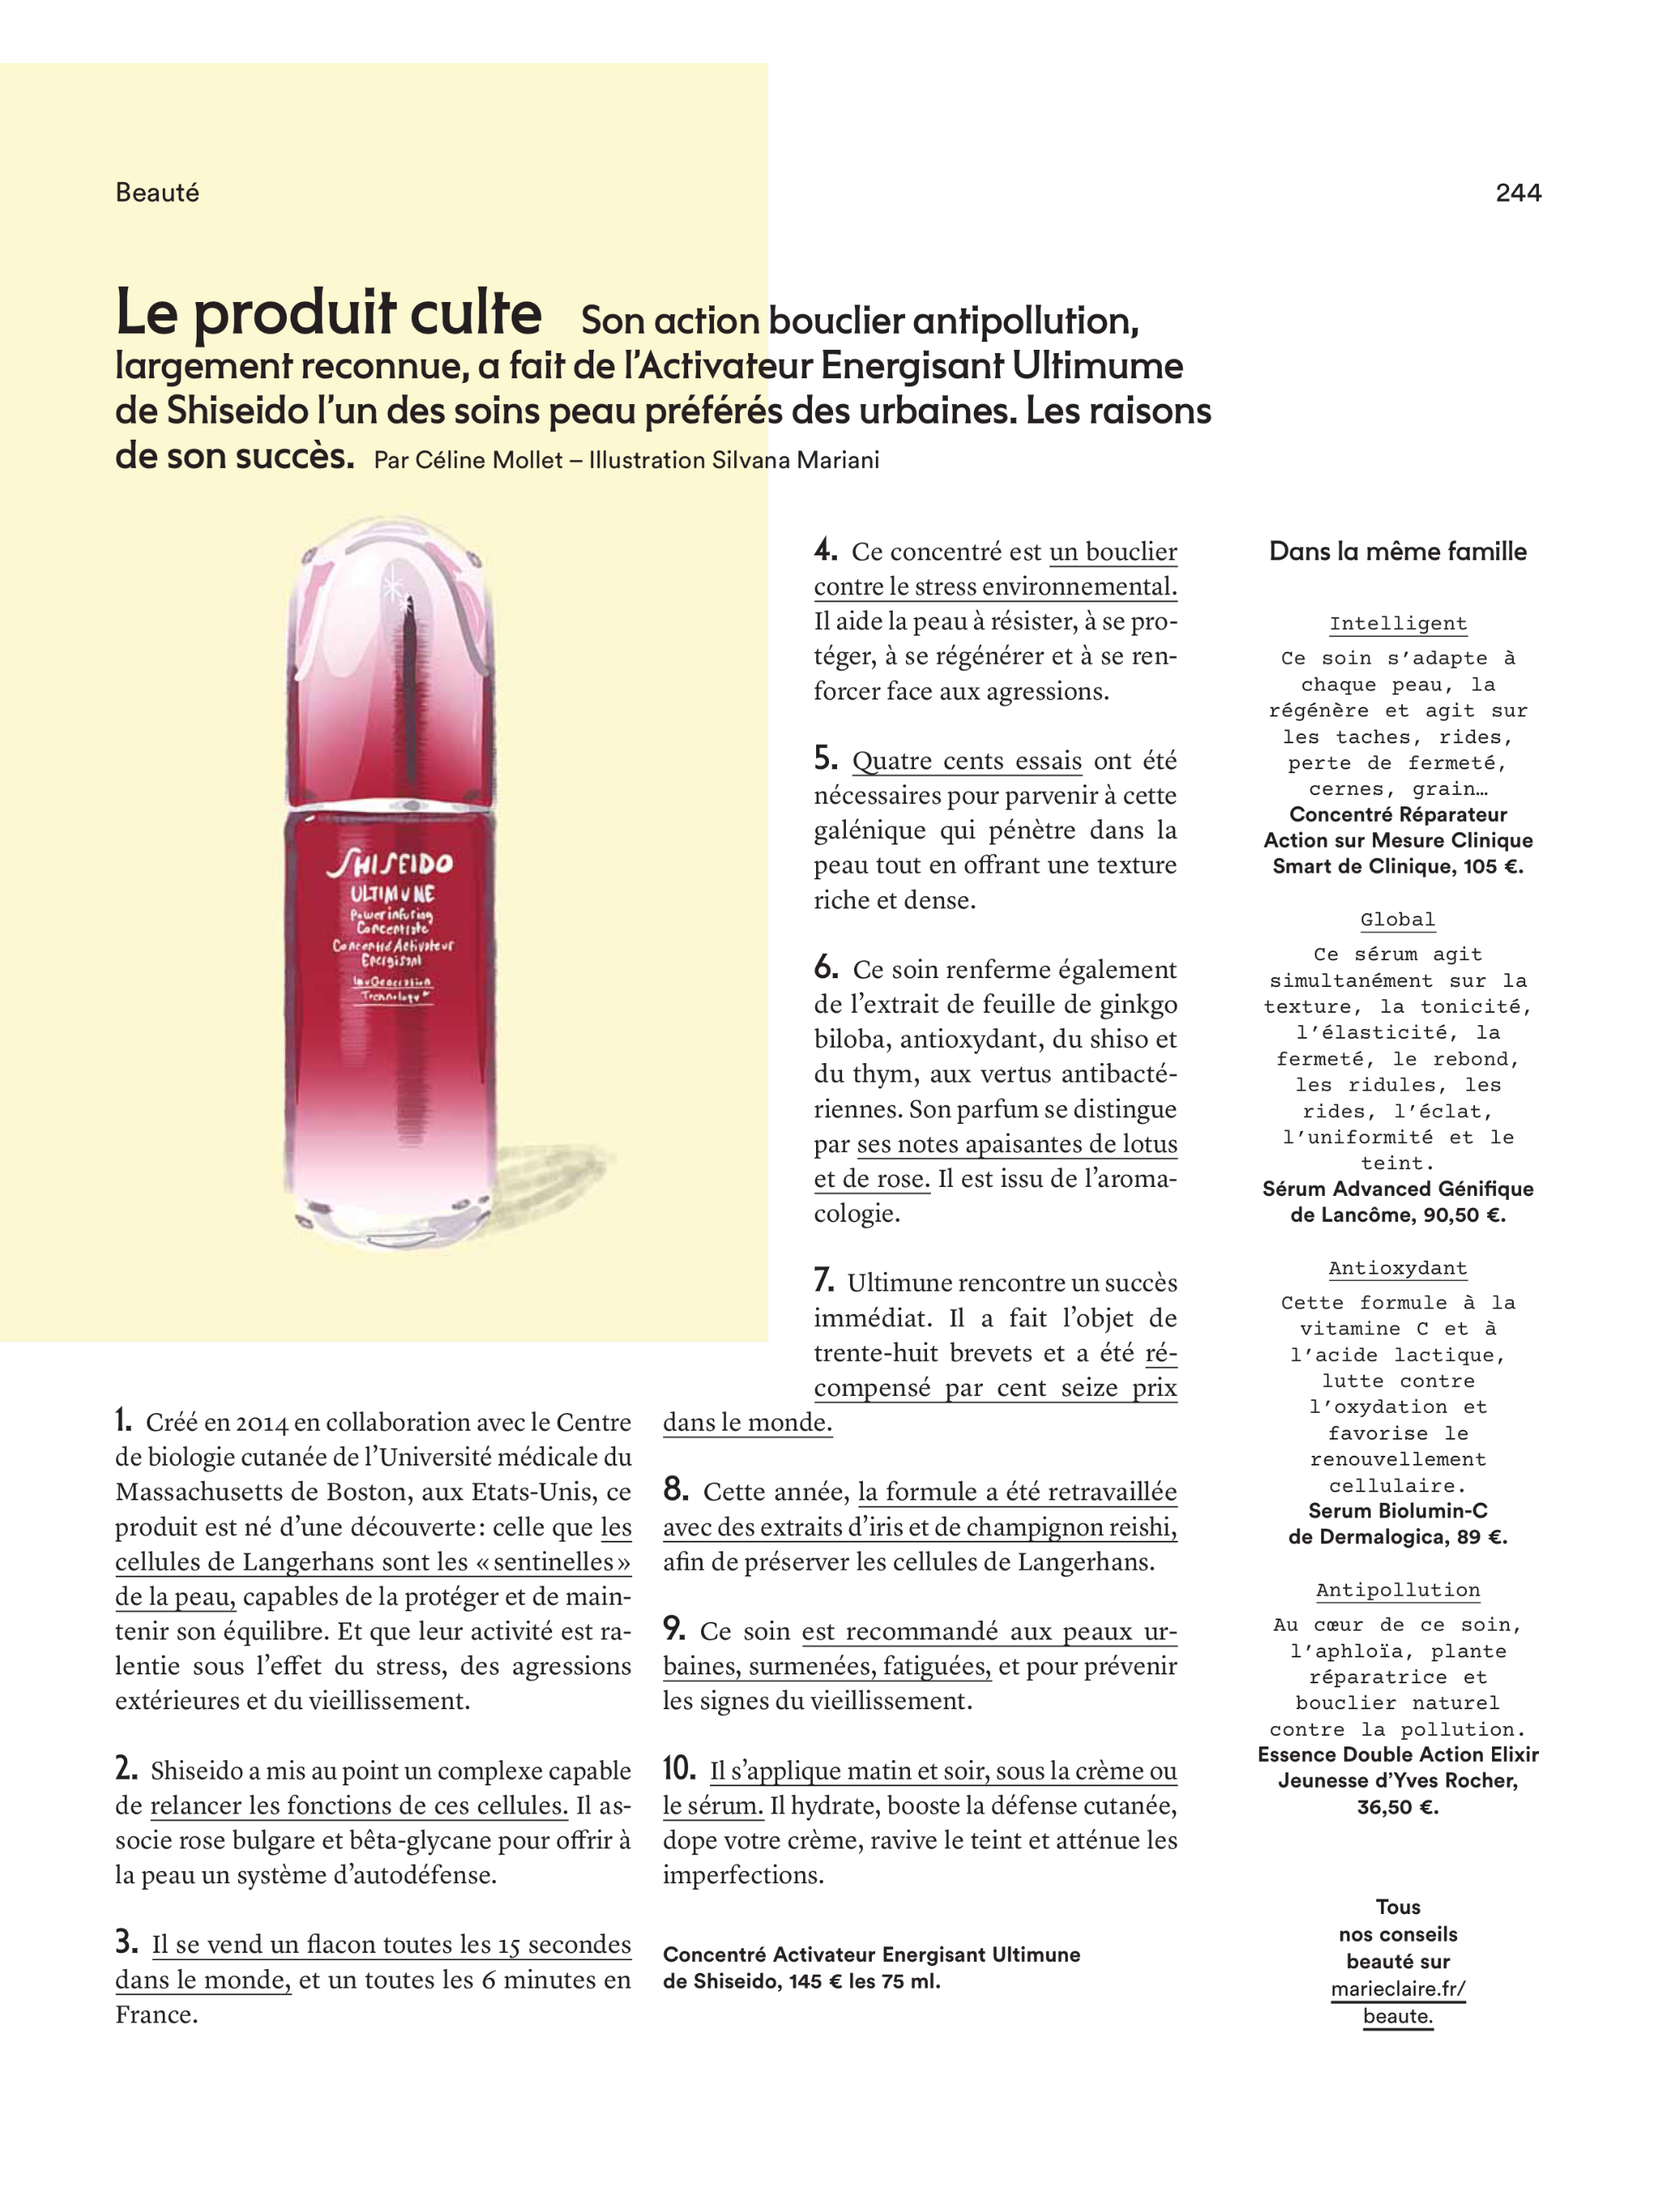 Le Produit Culte | Beauty Illustration by Silvana Mariani